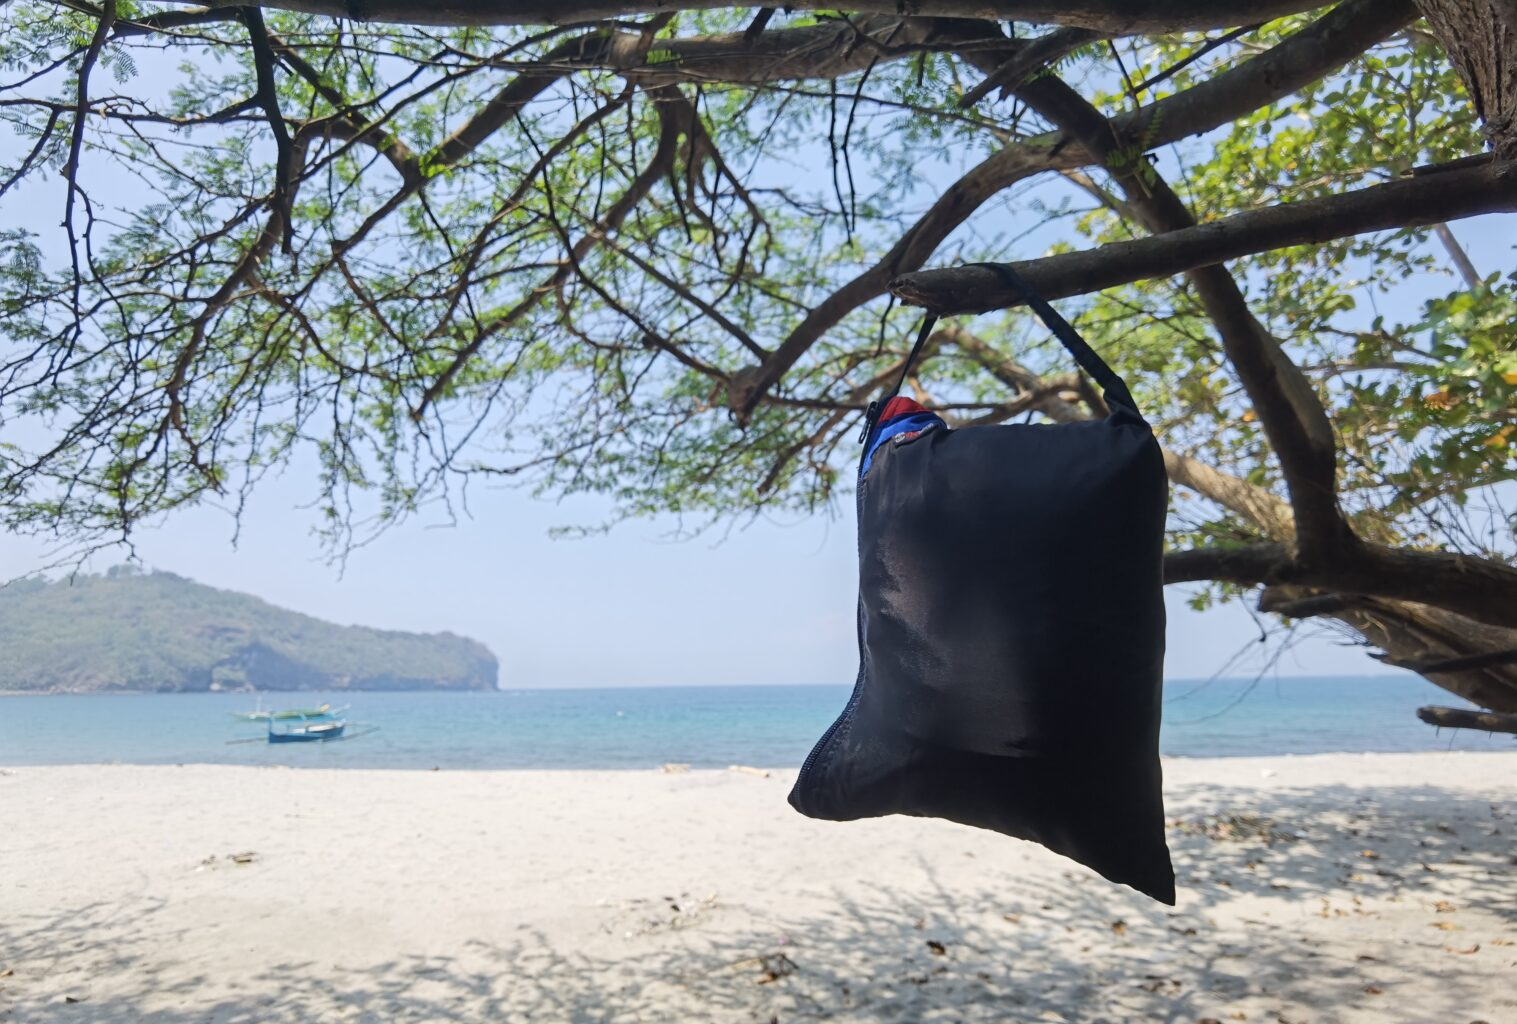 Kaplag's hammock pouch with handle.